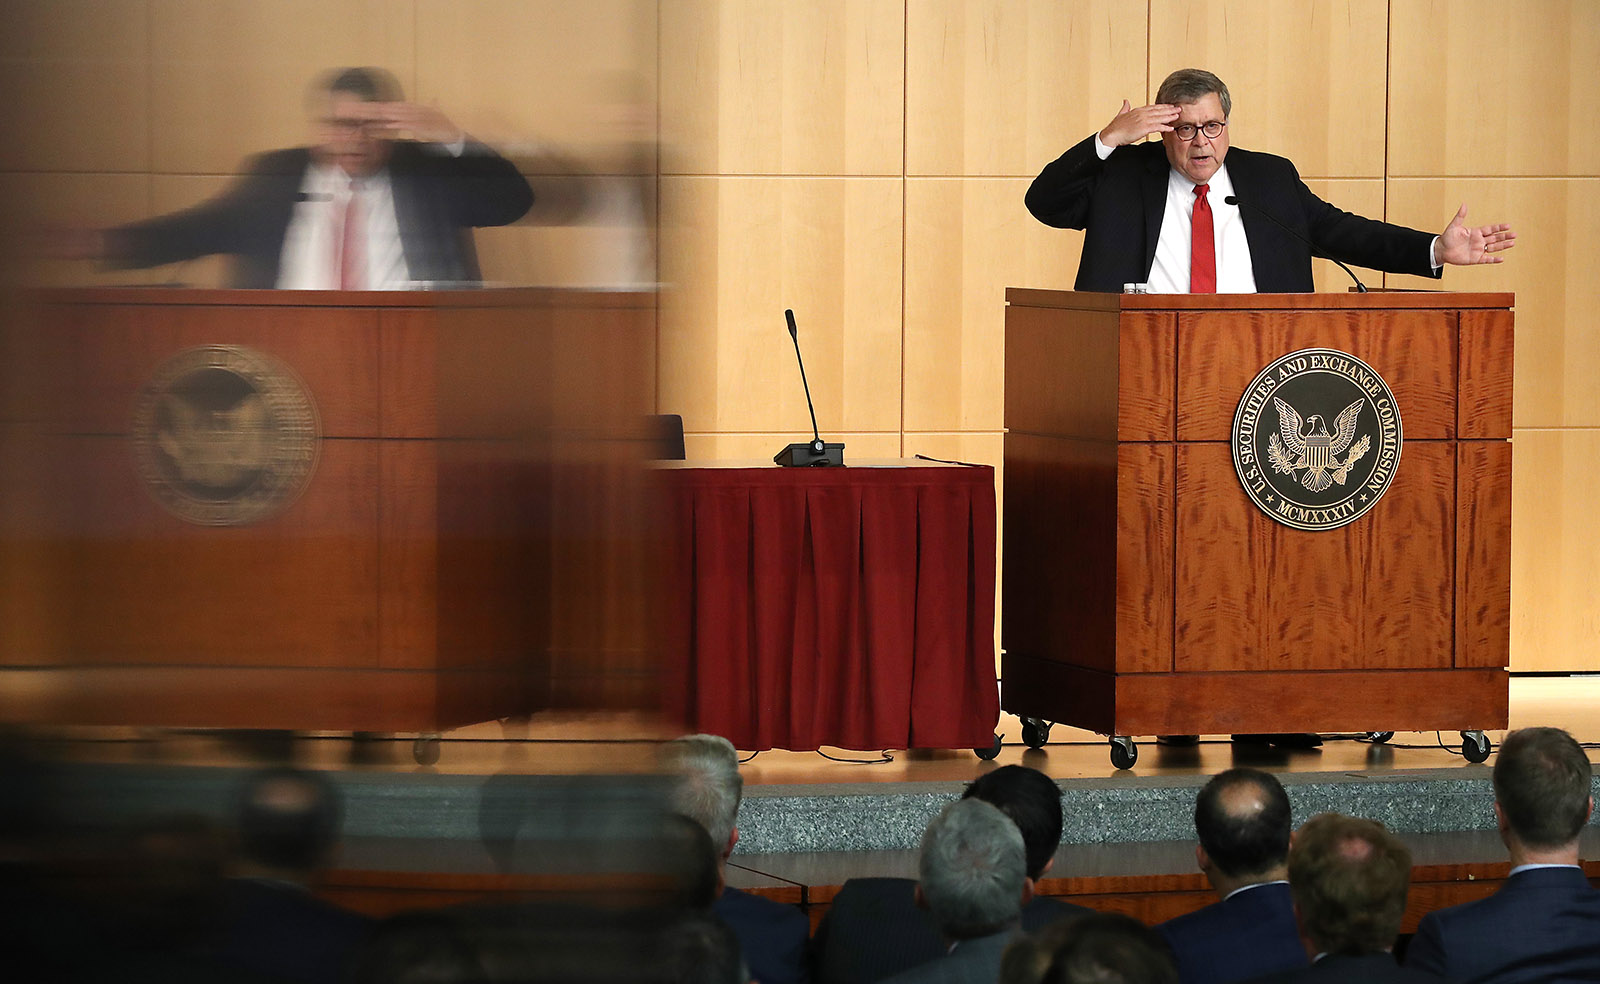 Attorney General William Barr delivering remarks to a conference held at the Securities and Exchange Commission, Washington, D.C., October 03, 2019